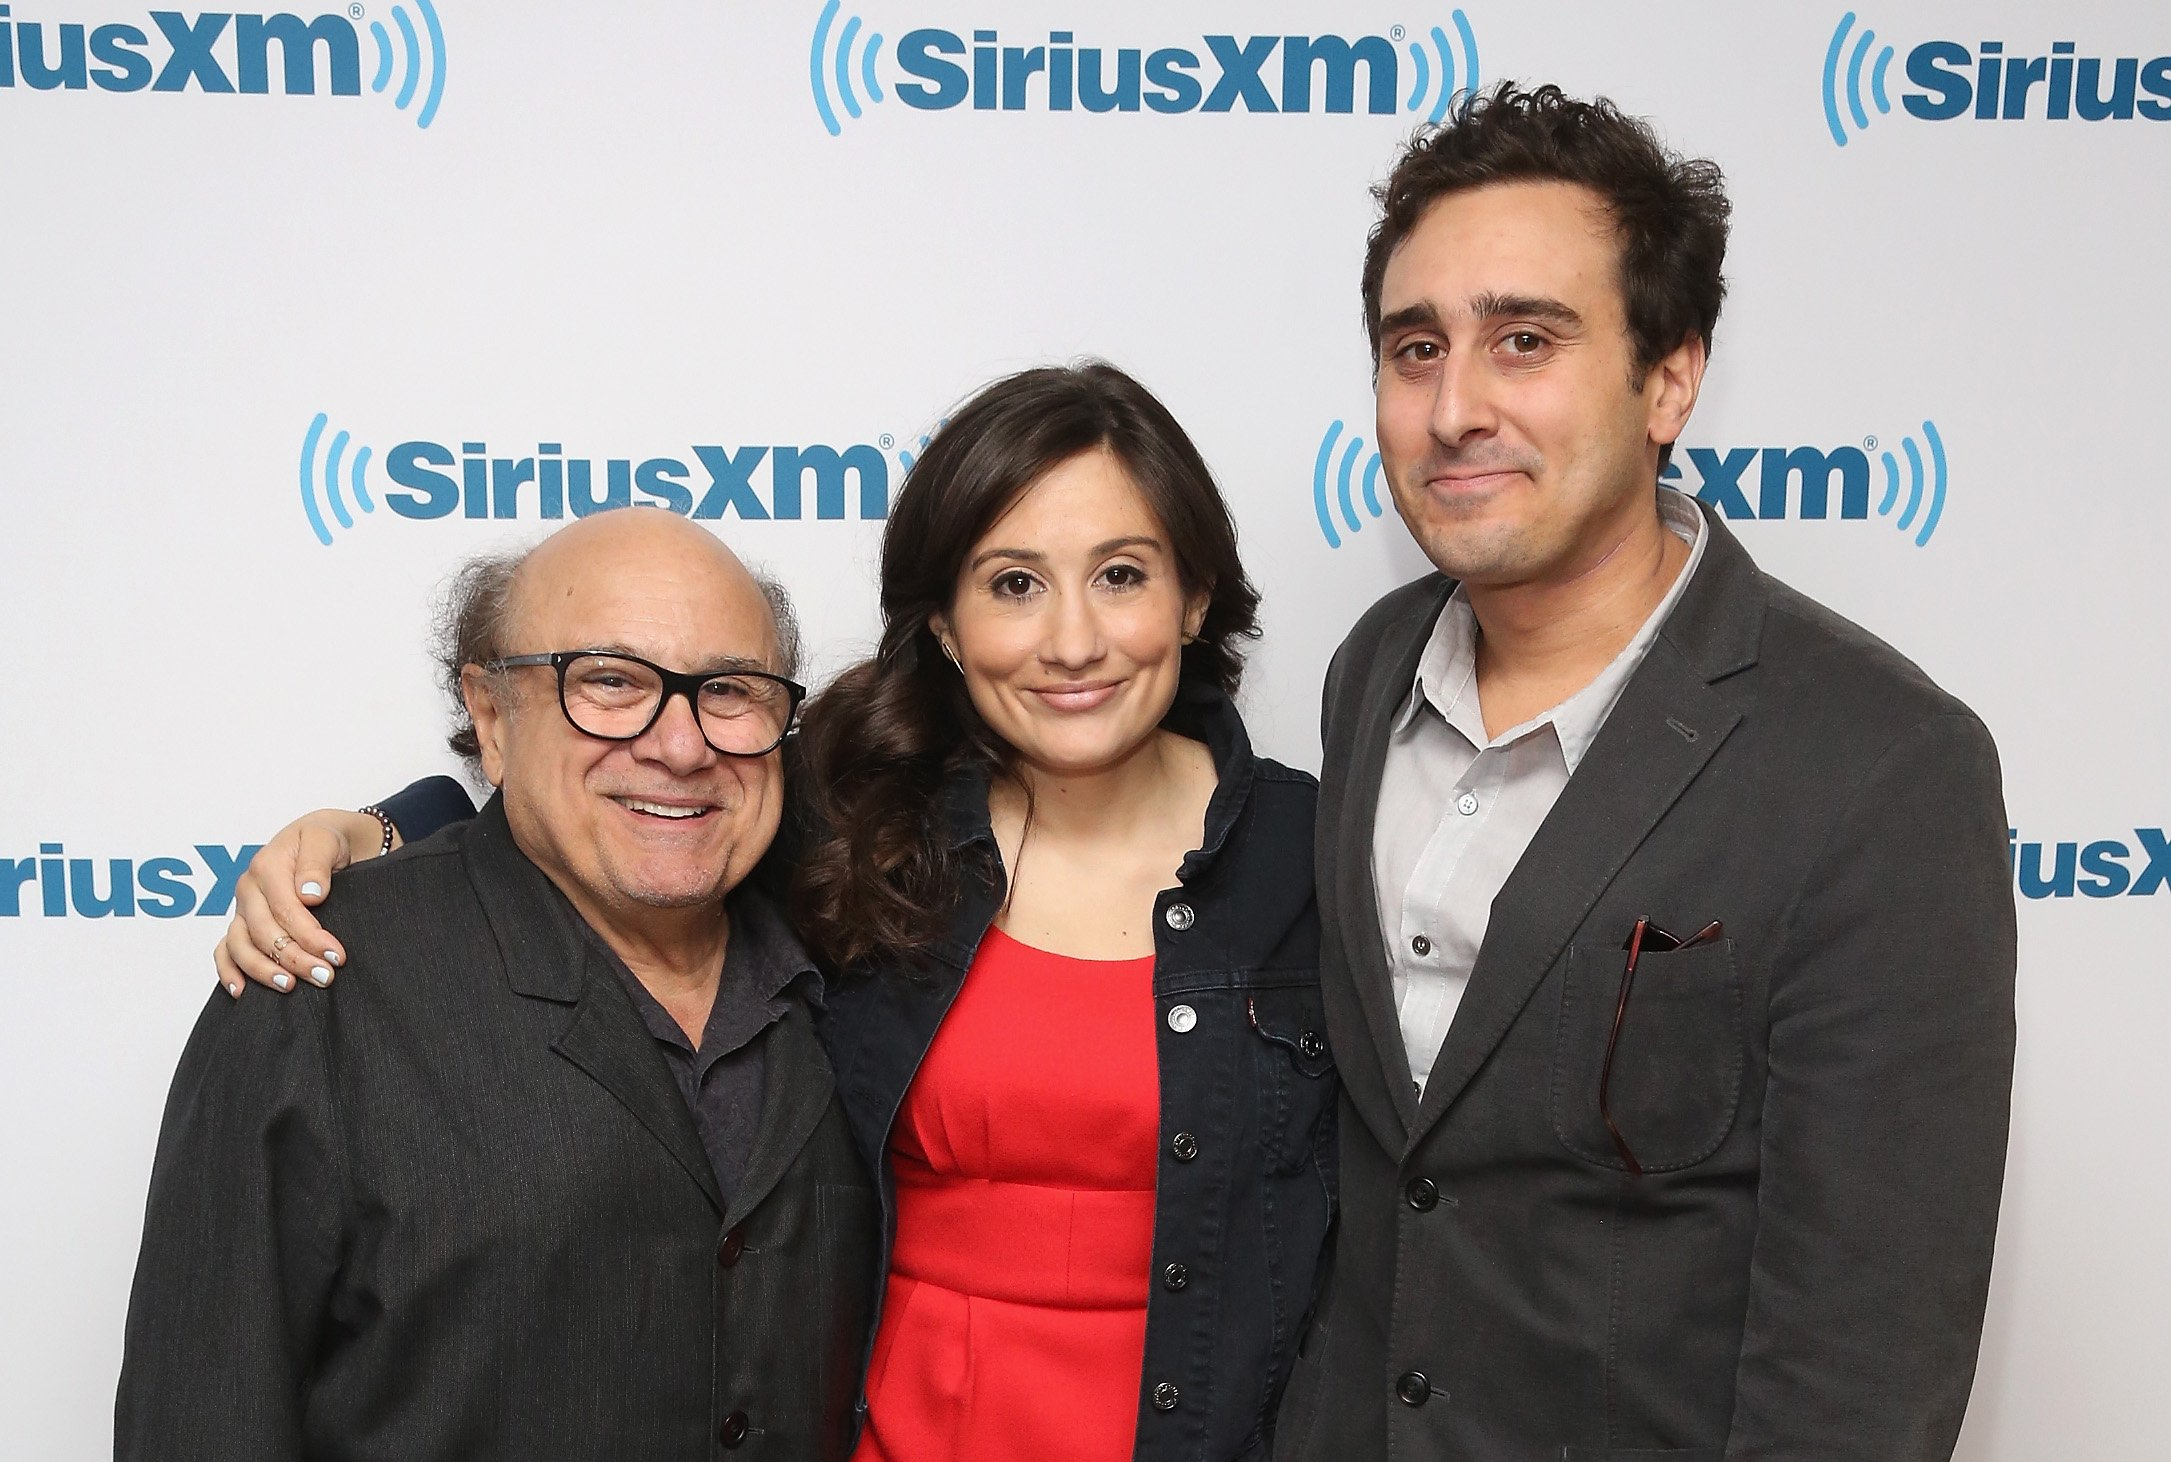 Danny DeVito, Lucy DeVito and Jake DeVito visit at SiriusXM Studio on April 18, 2016 | Photo: GettyImages